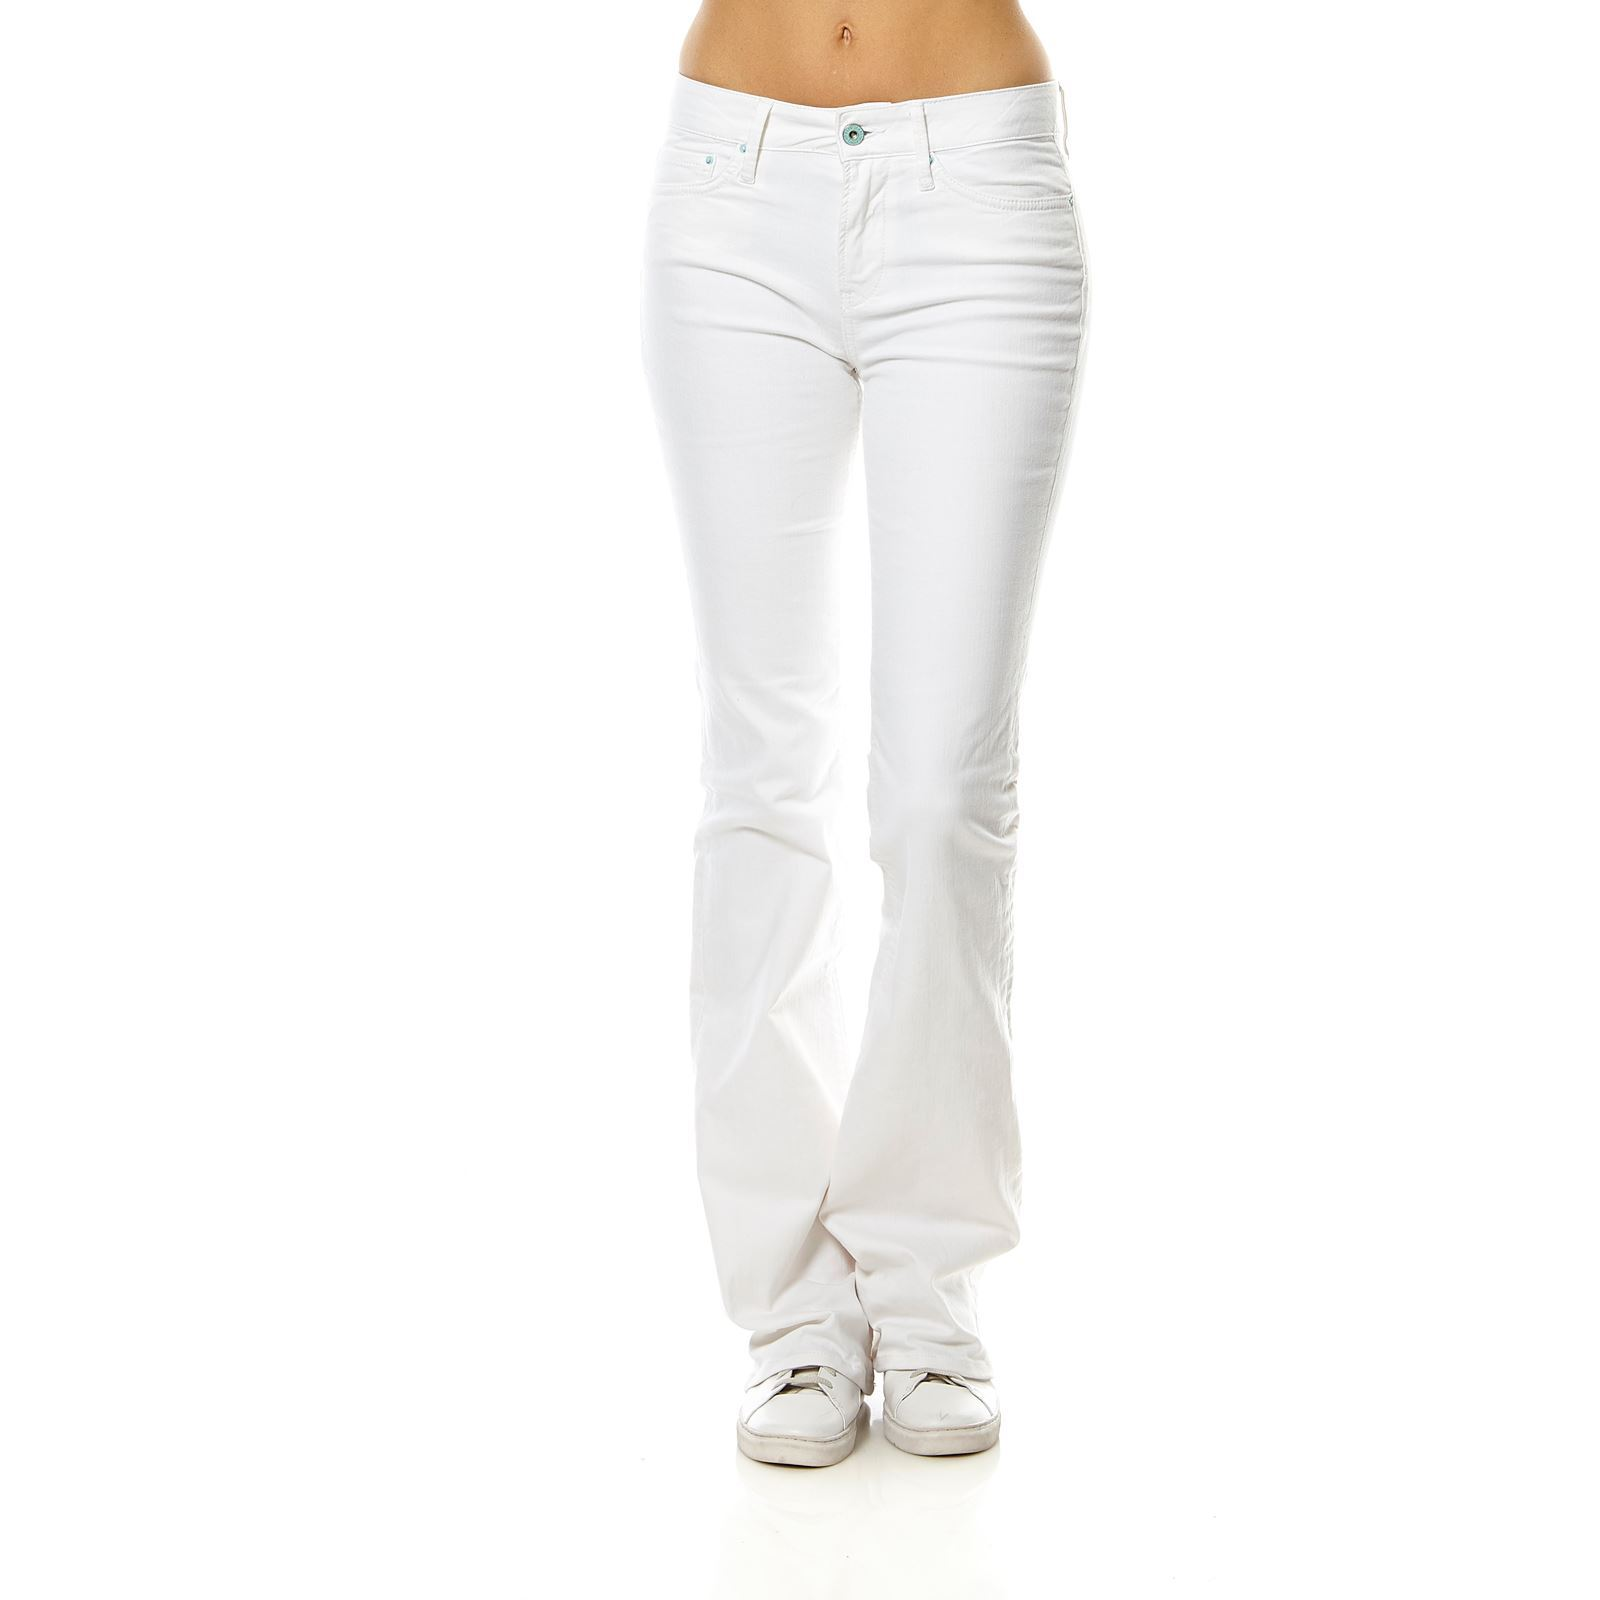 Pepe Jeans London Mayfair - Jean flare - blanc